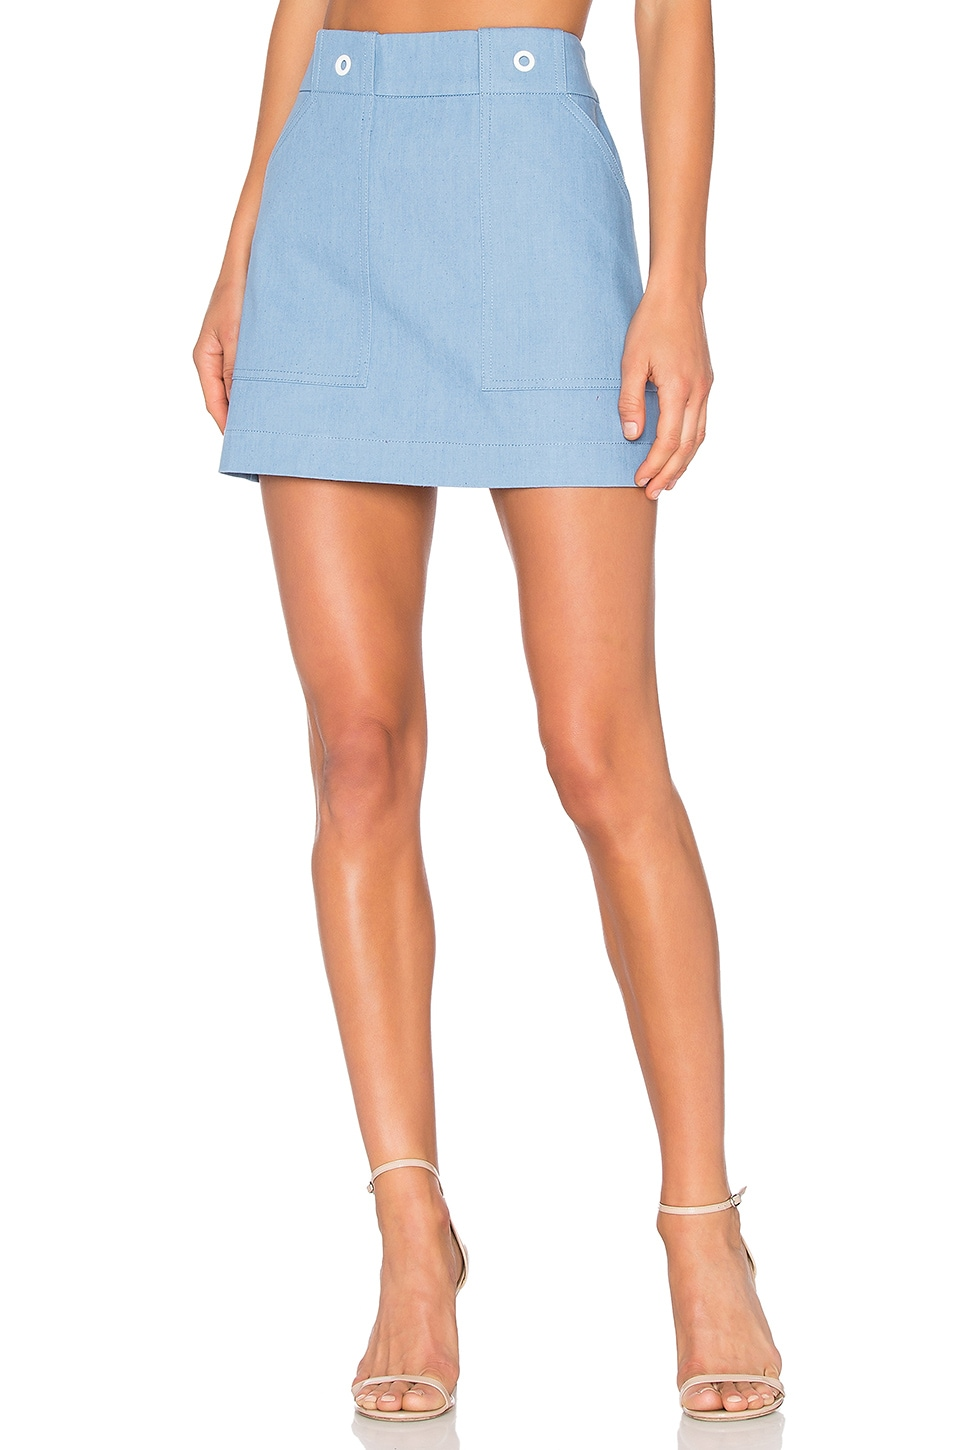 Rag & Bone Wades Skirt in Pale Blue